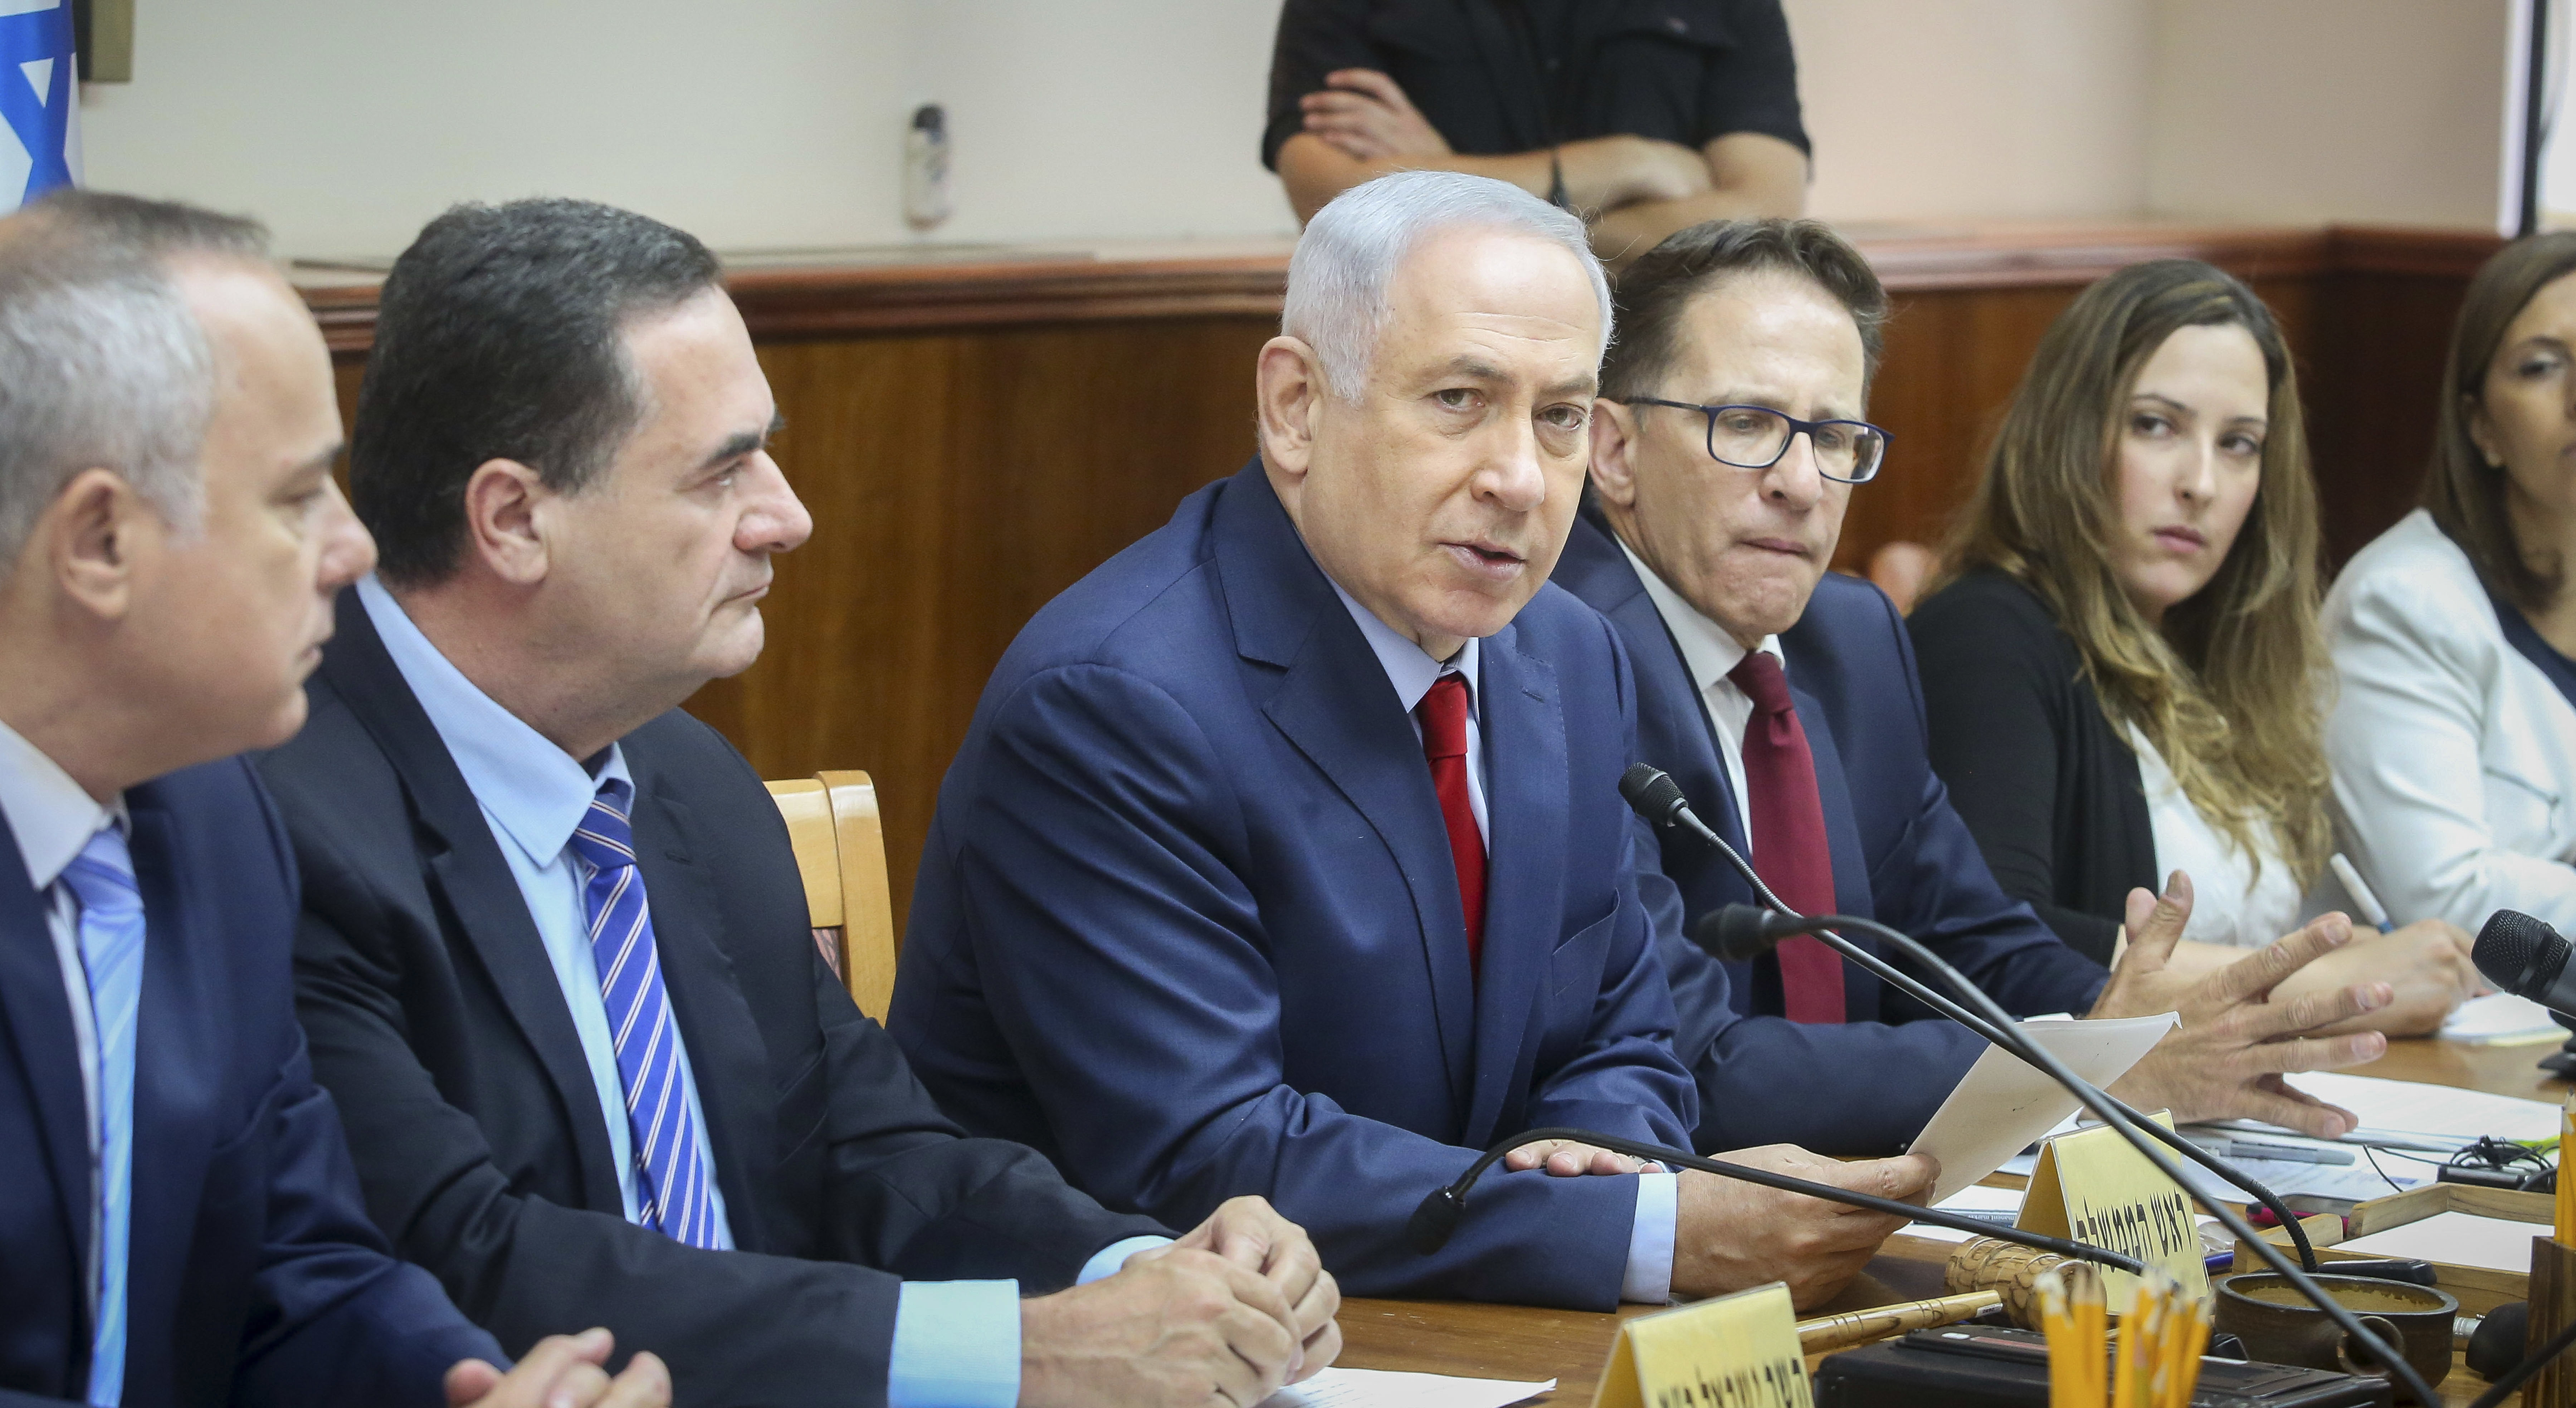 netanyahu sits at a table with other men